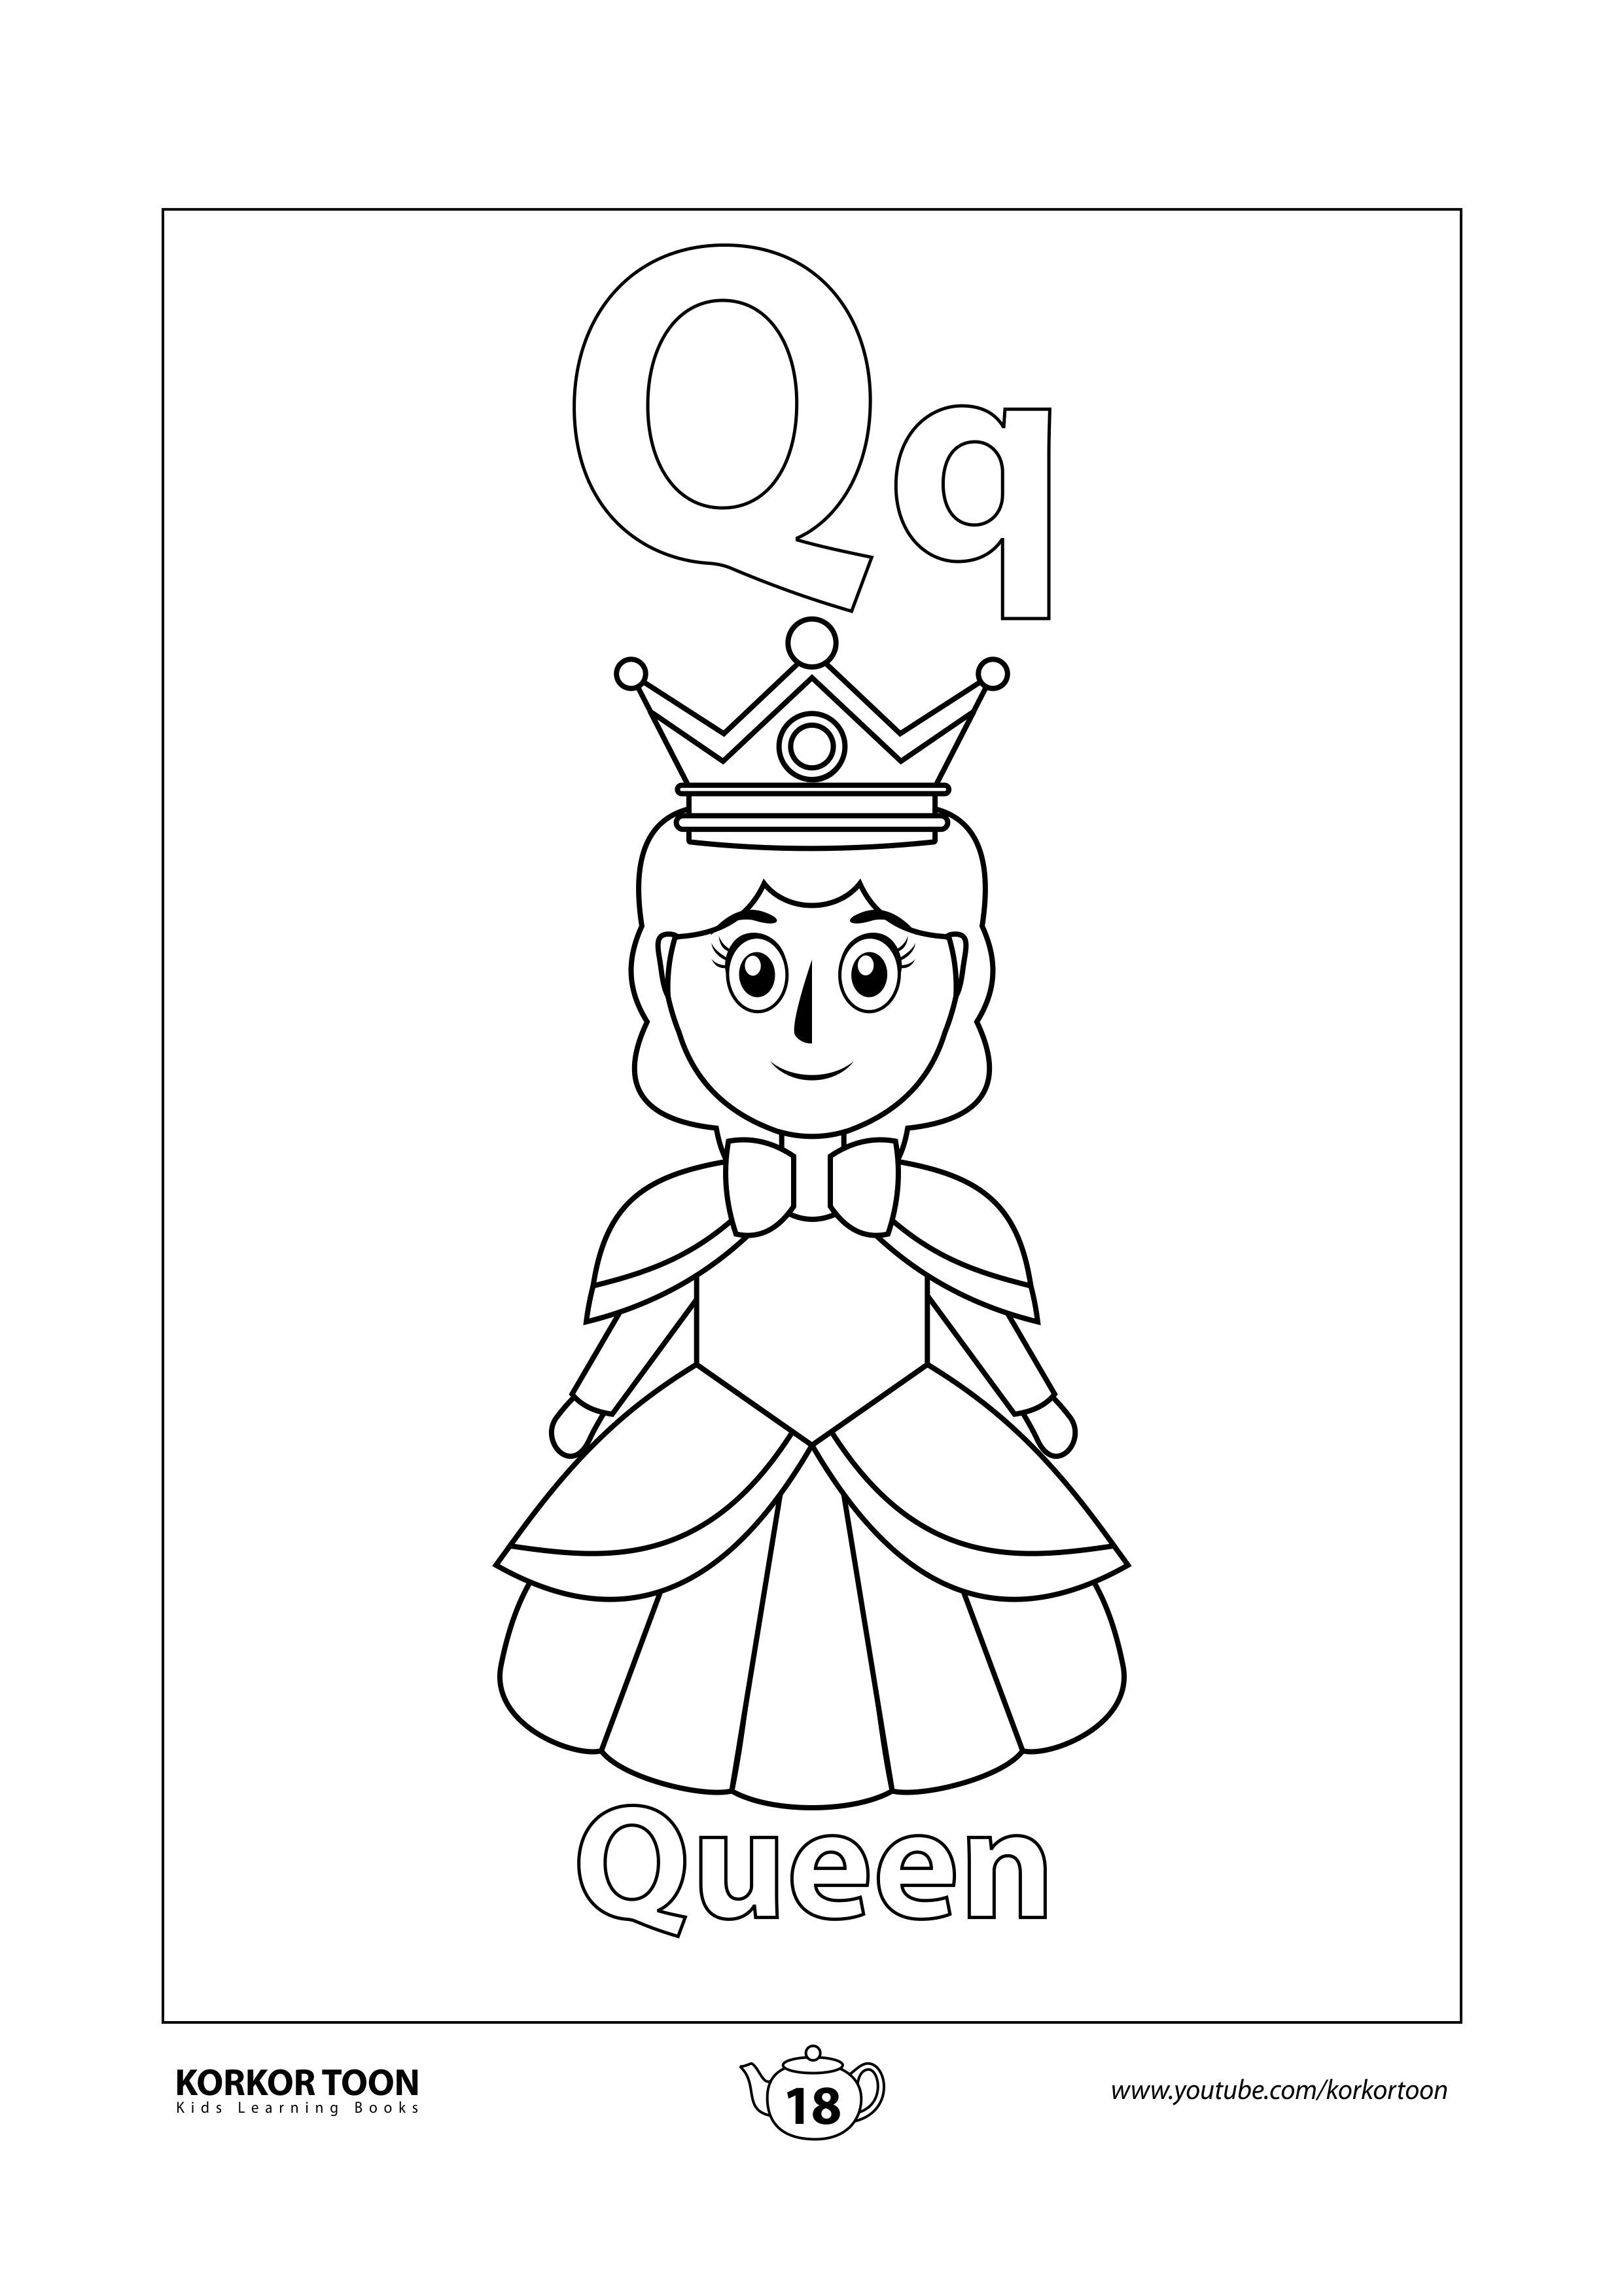 FREE Alphabet Coloring Pages | 3508x2482